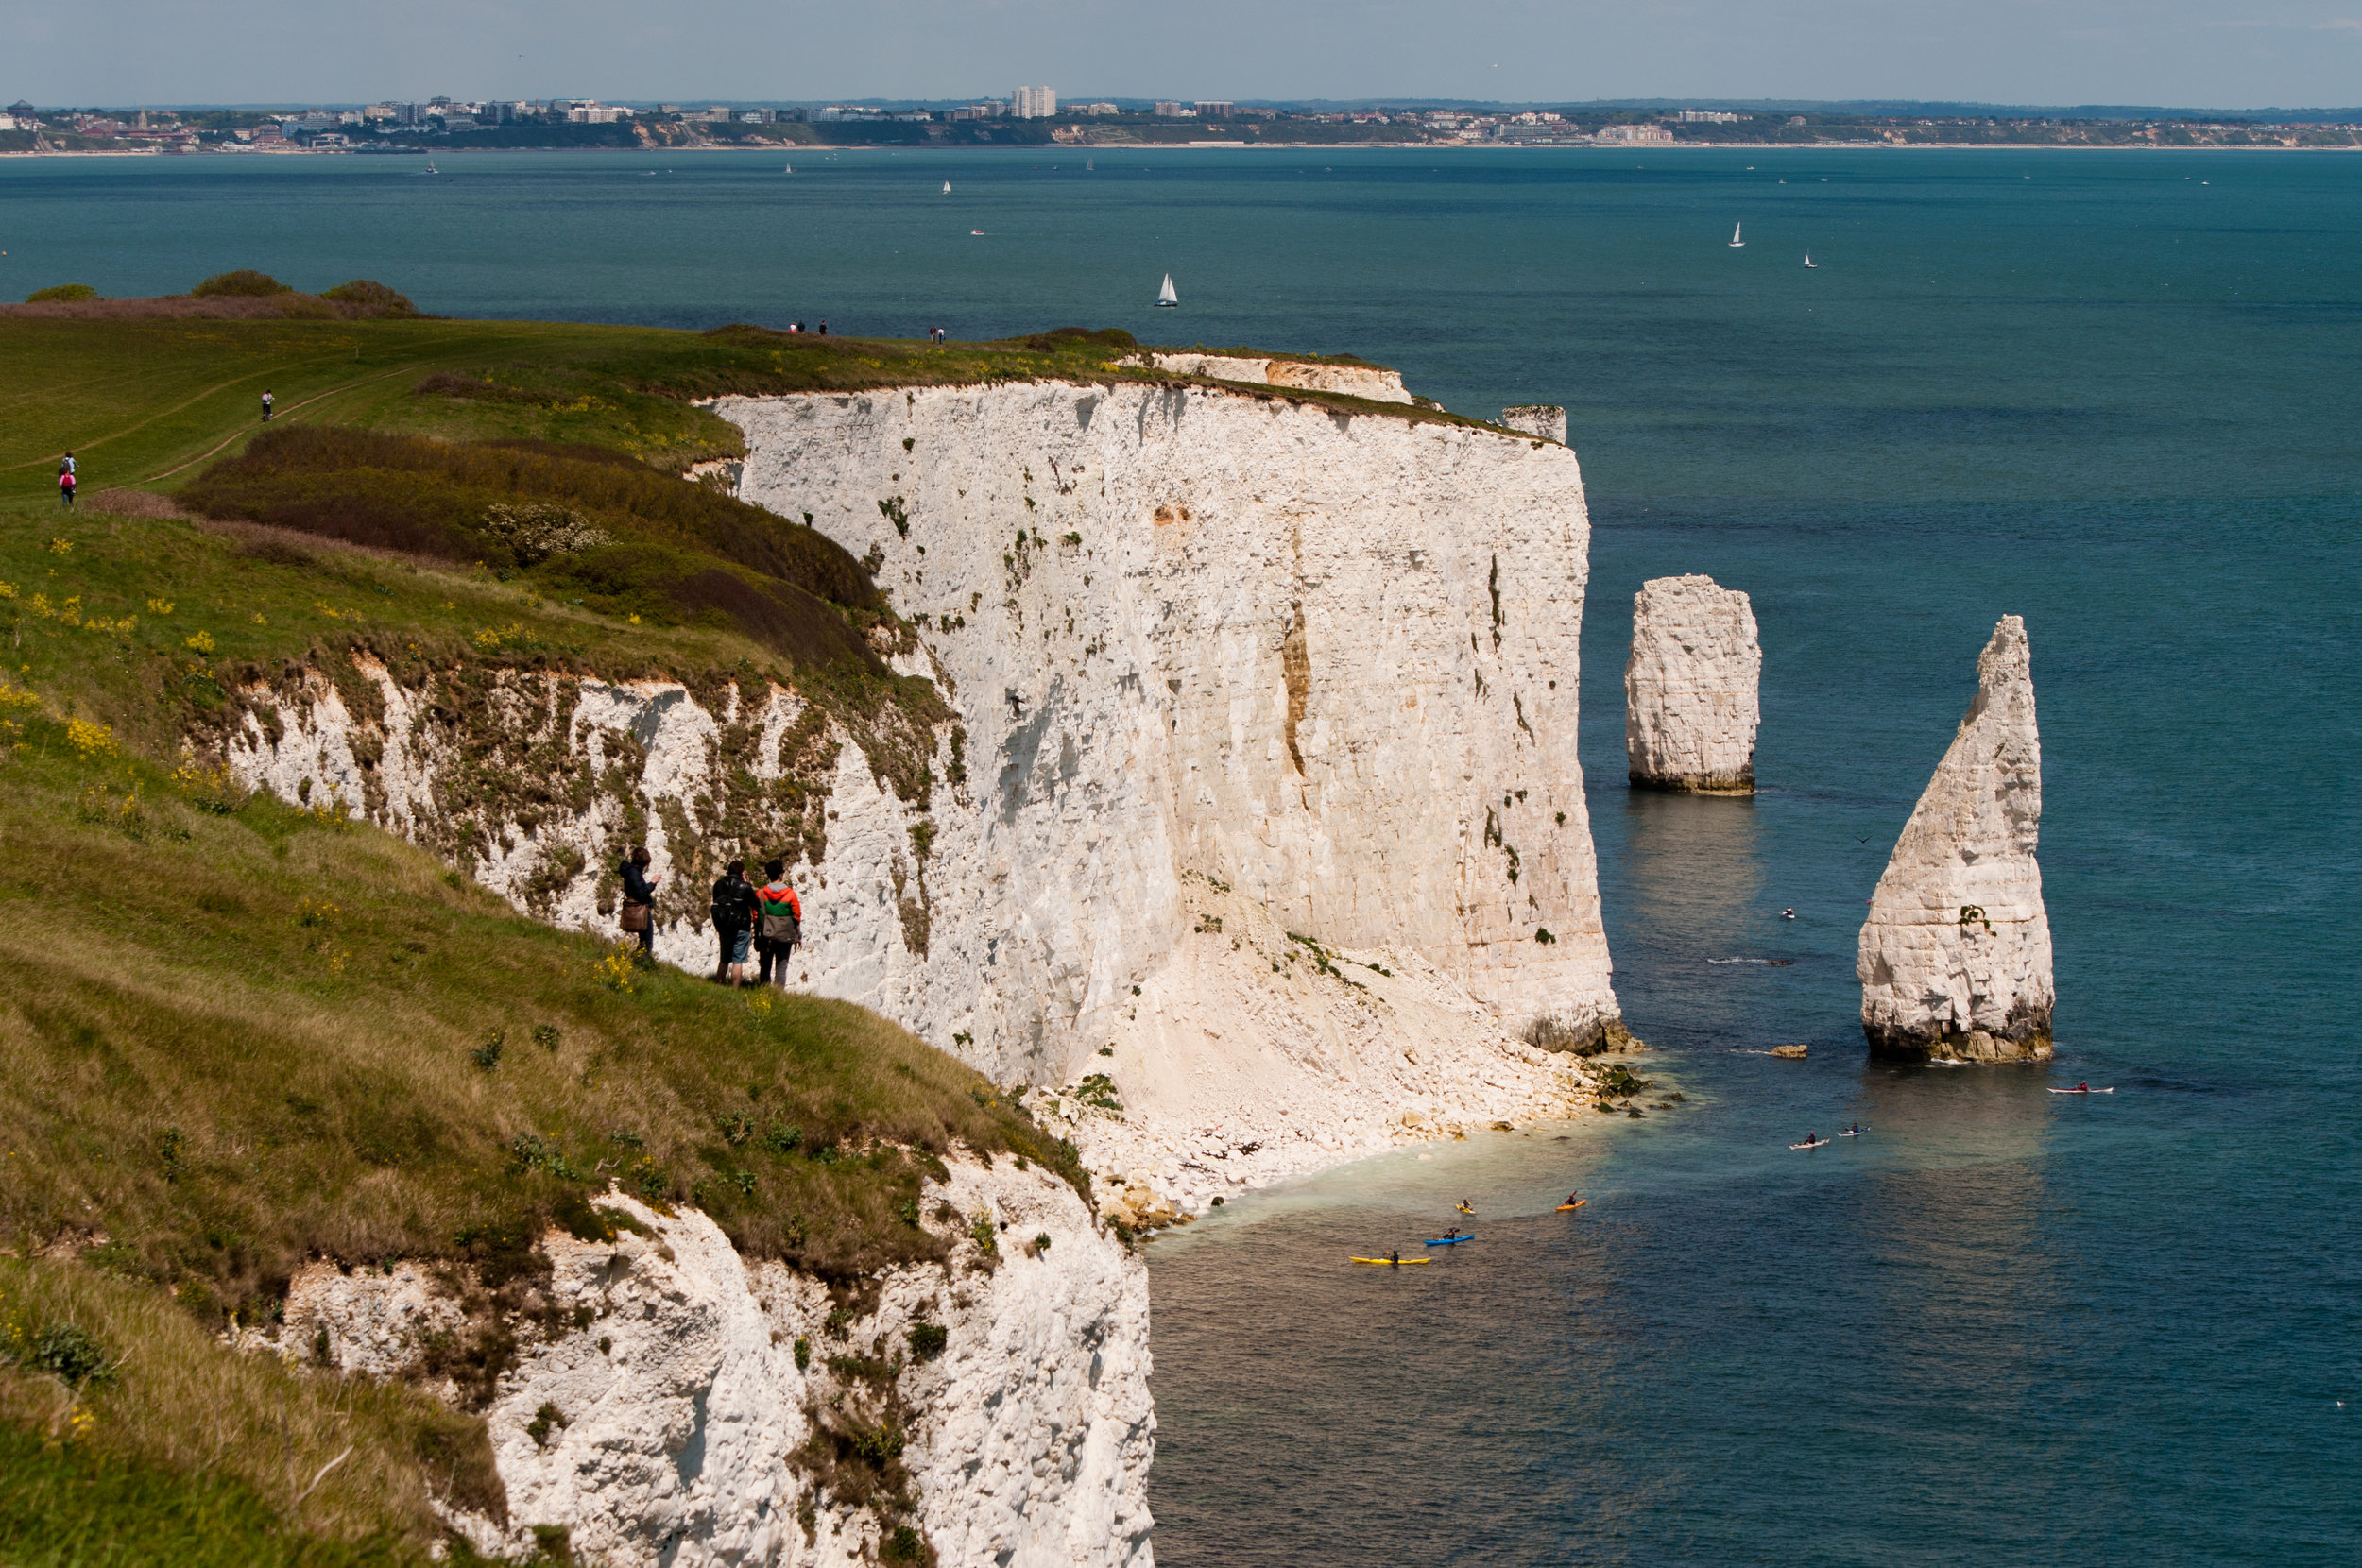 sea Kayak tuition in dorset